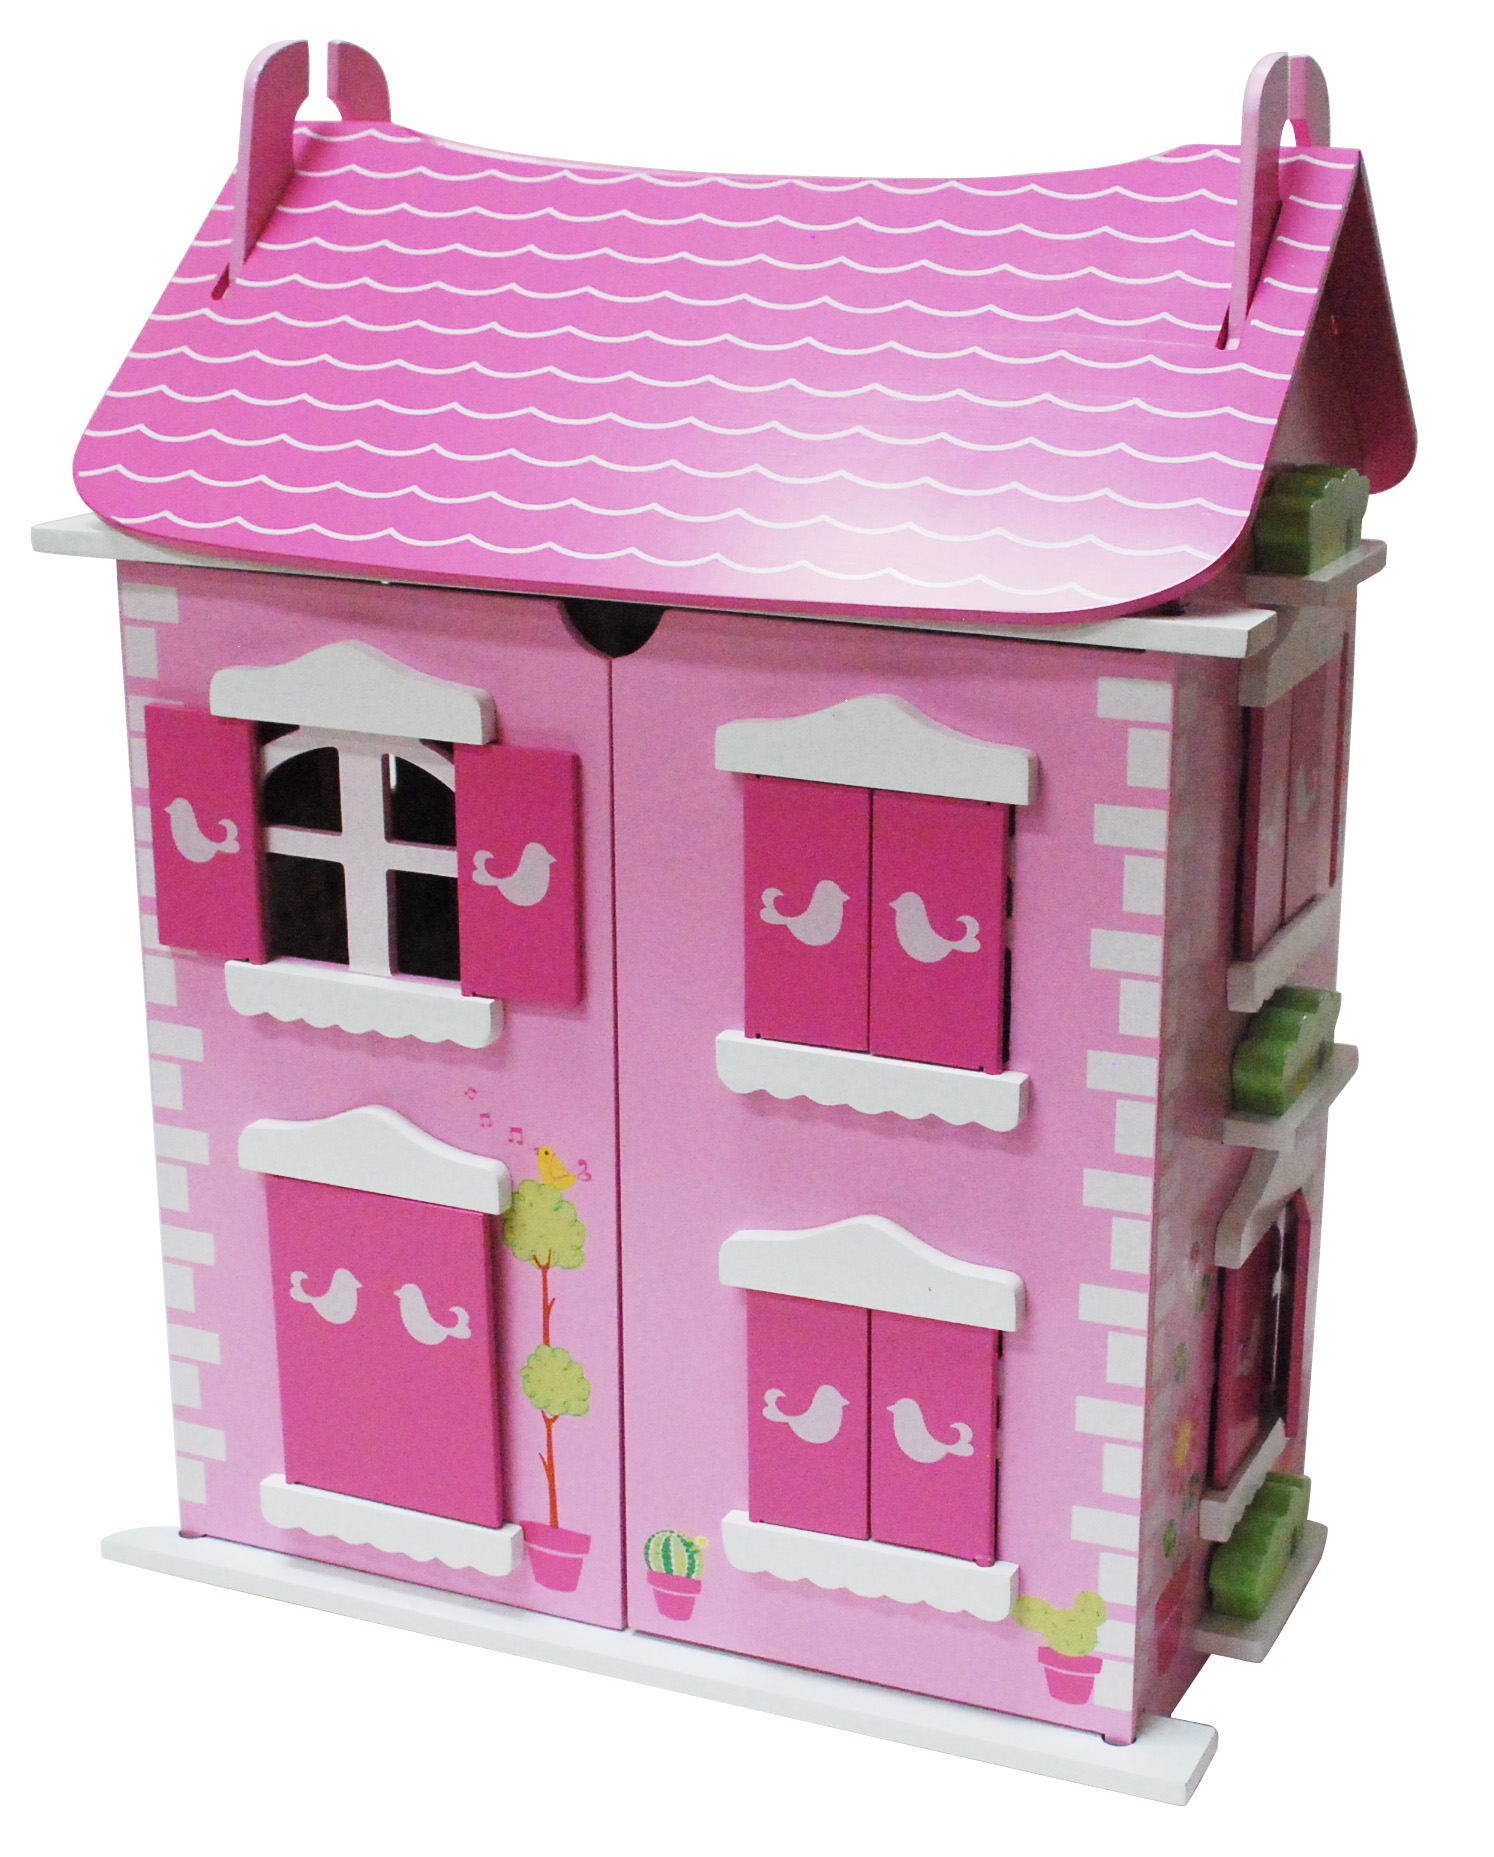 Wooden Doll house with 16 pcs of furniture